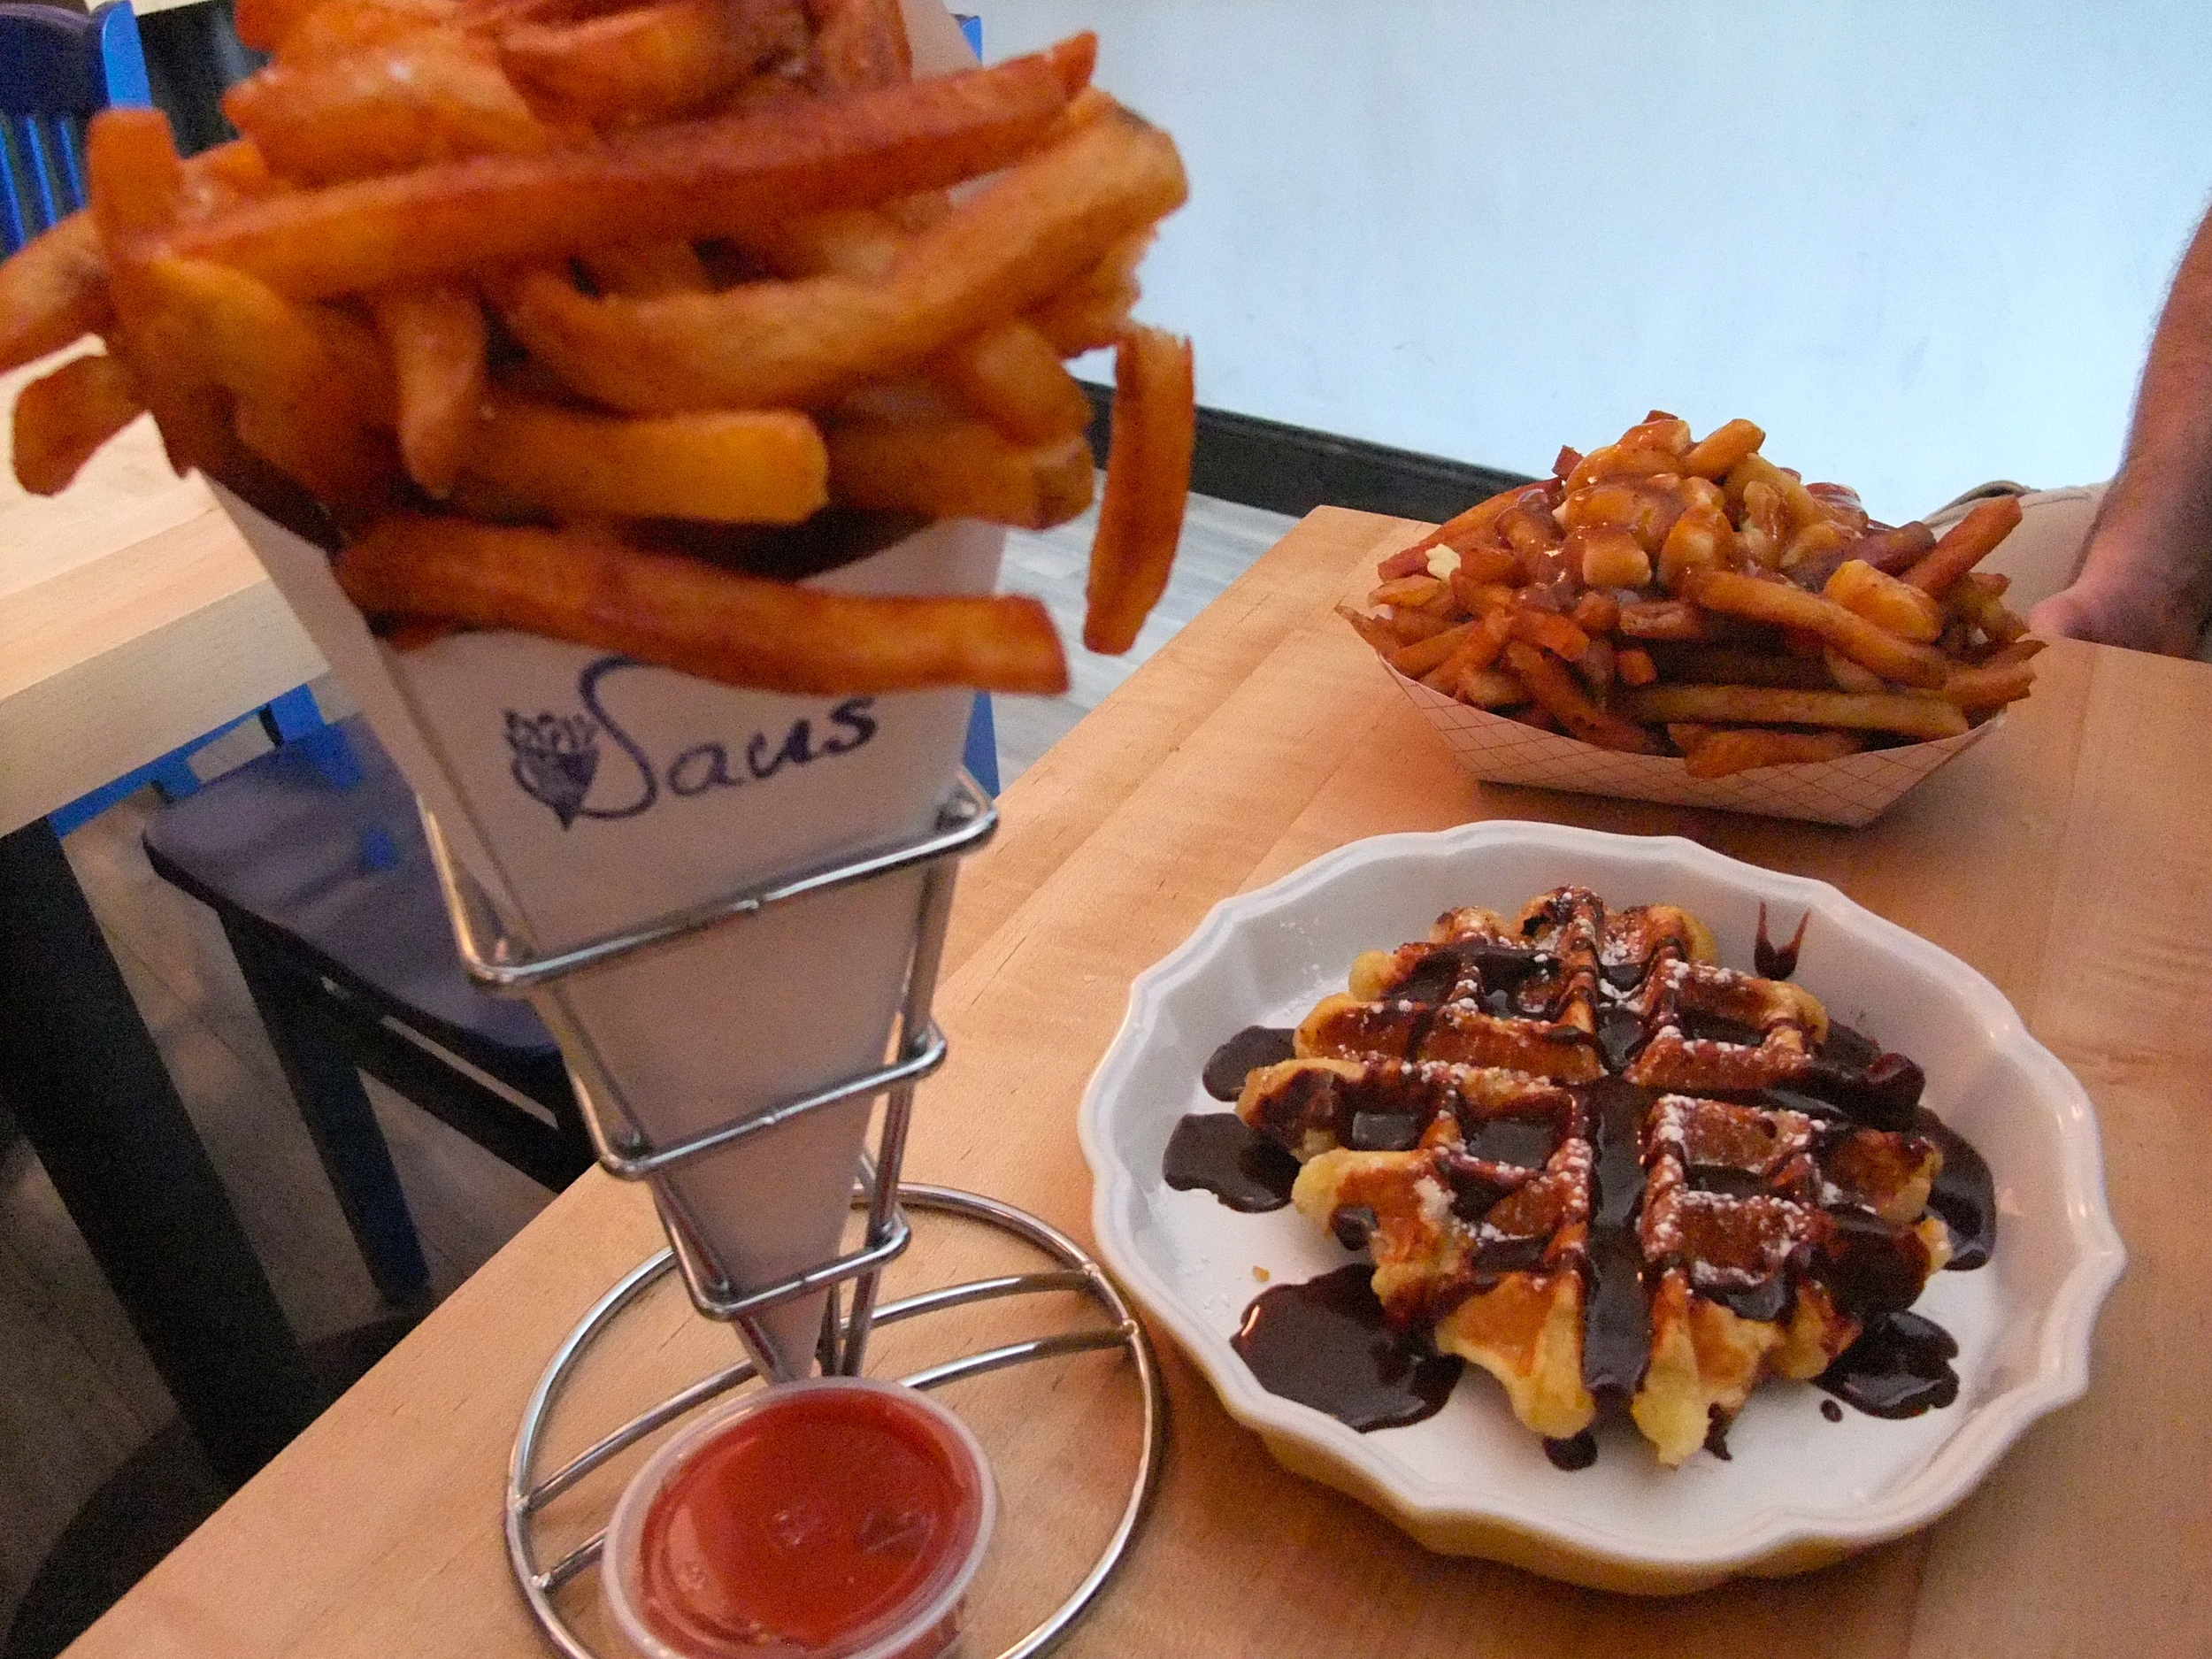 Belgian fries, a waffle, and poutine on our trip to  Saus  in Boston, Massachusetts in 2011